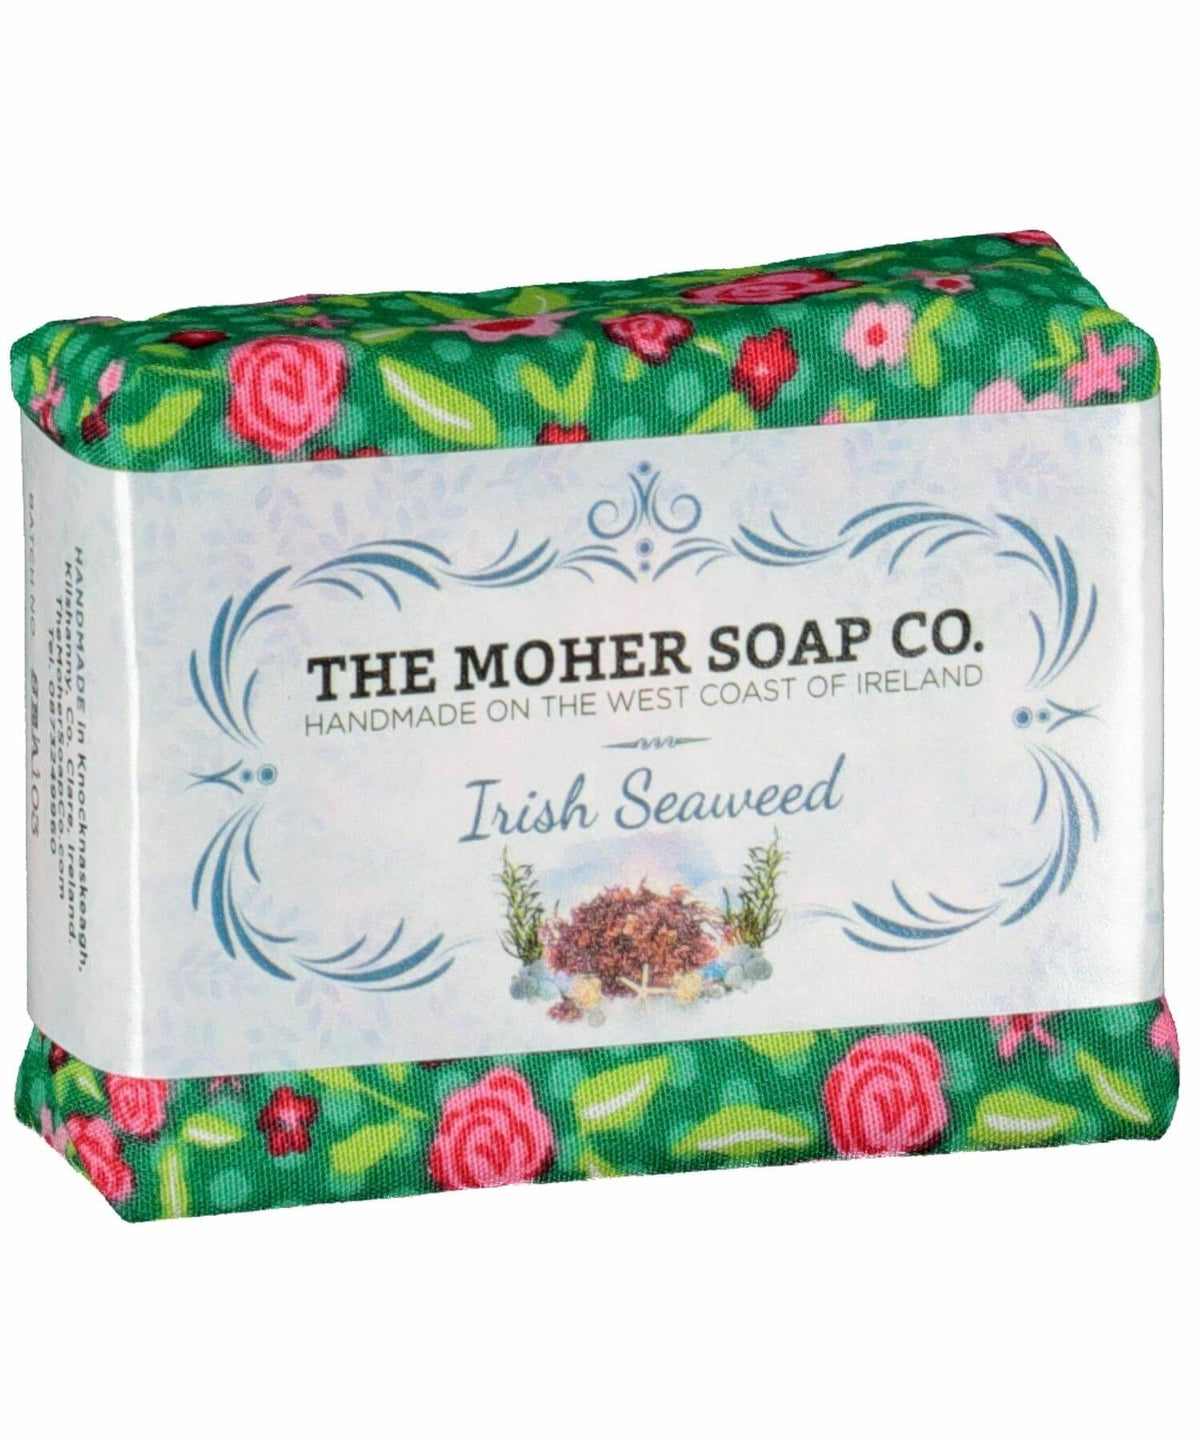 Soap Bar - Irish Seaweed - [The Moher Soap Co.] - Skincare & Beauty - Irish Gifts